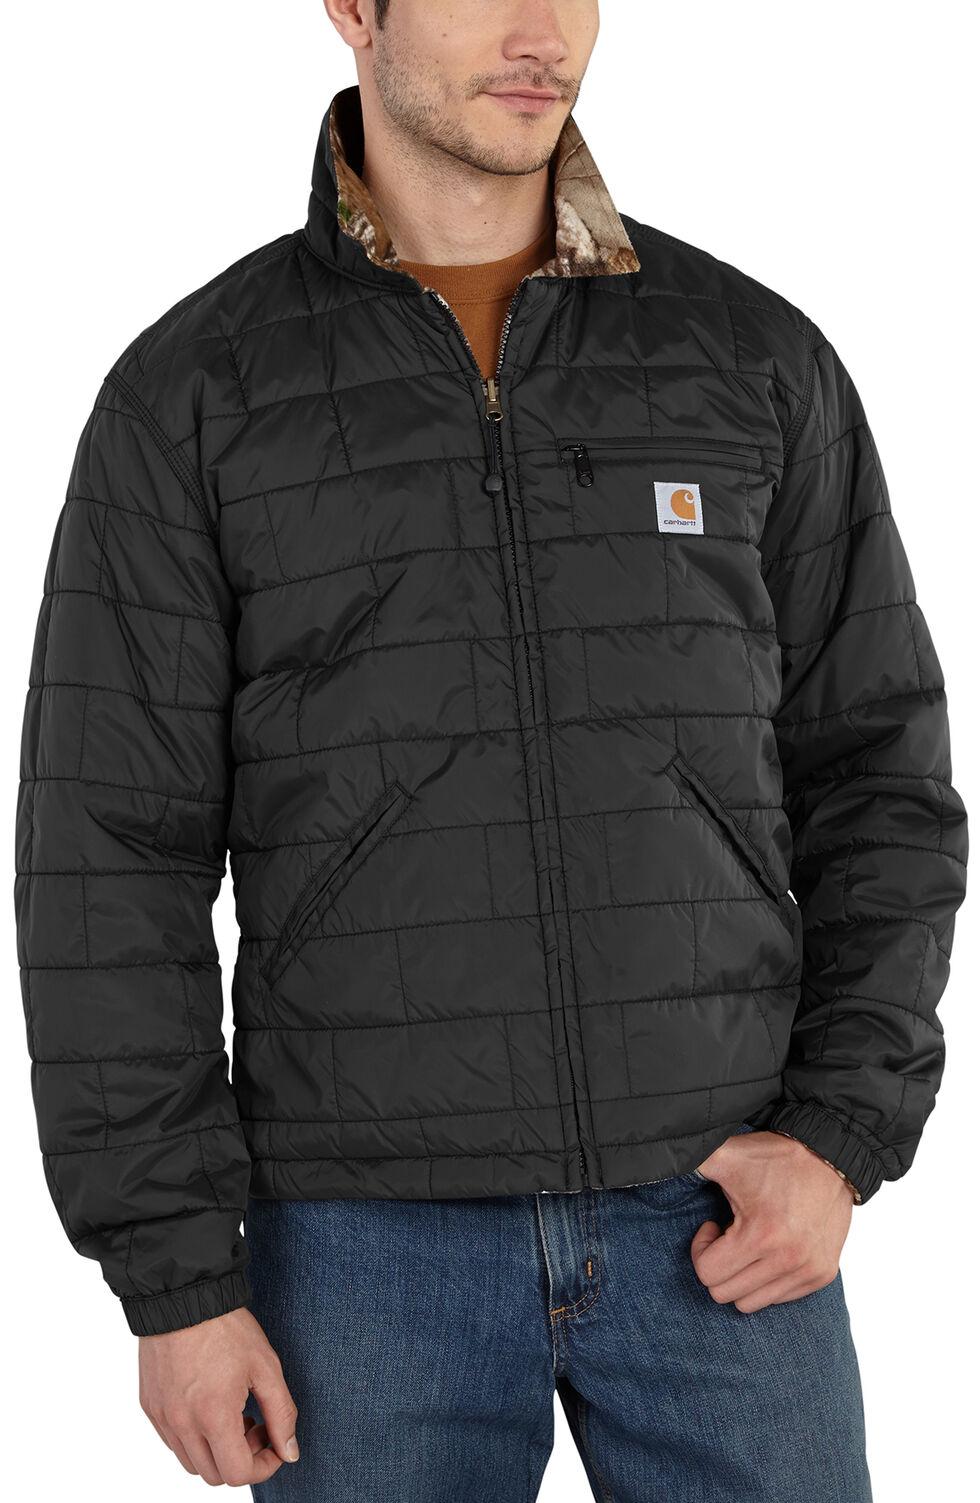 Carhartt Men's Woodsville Reversible Camo Jacket, Black, hi-res